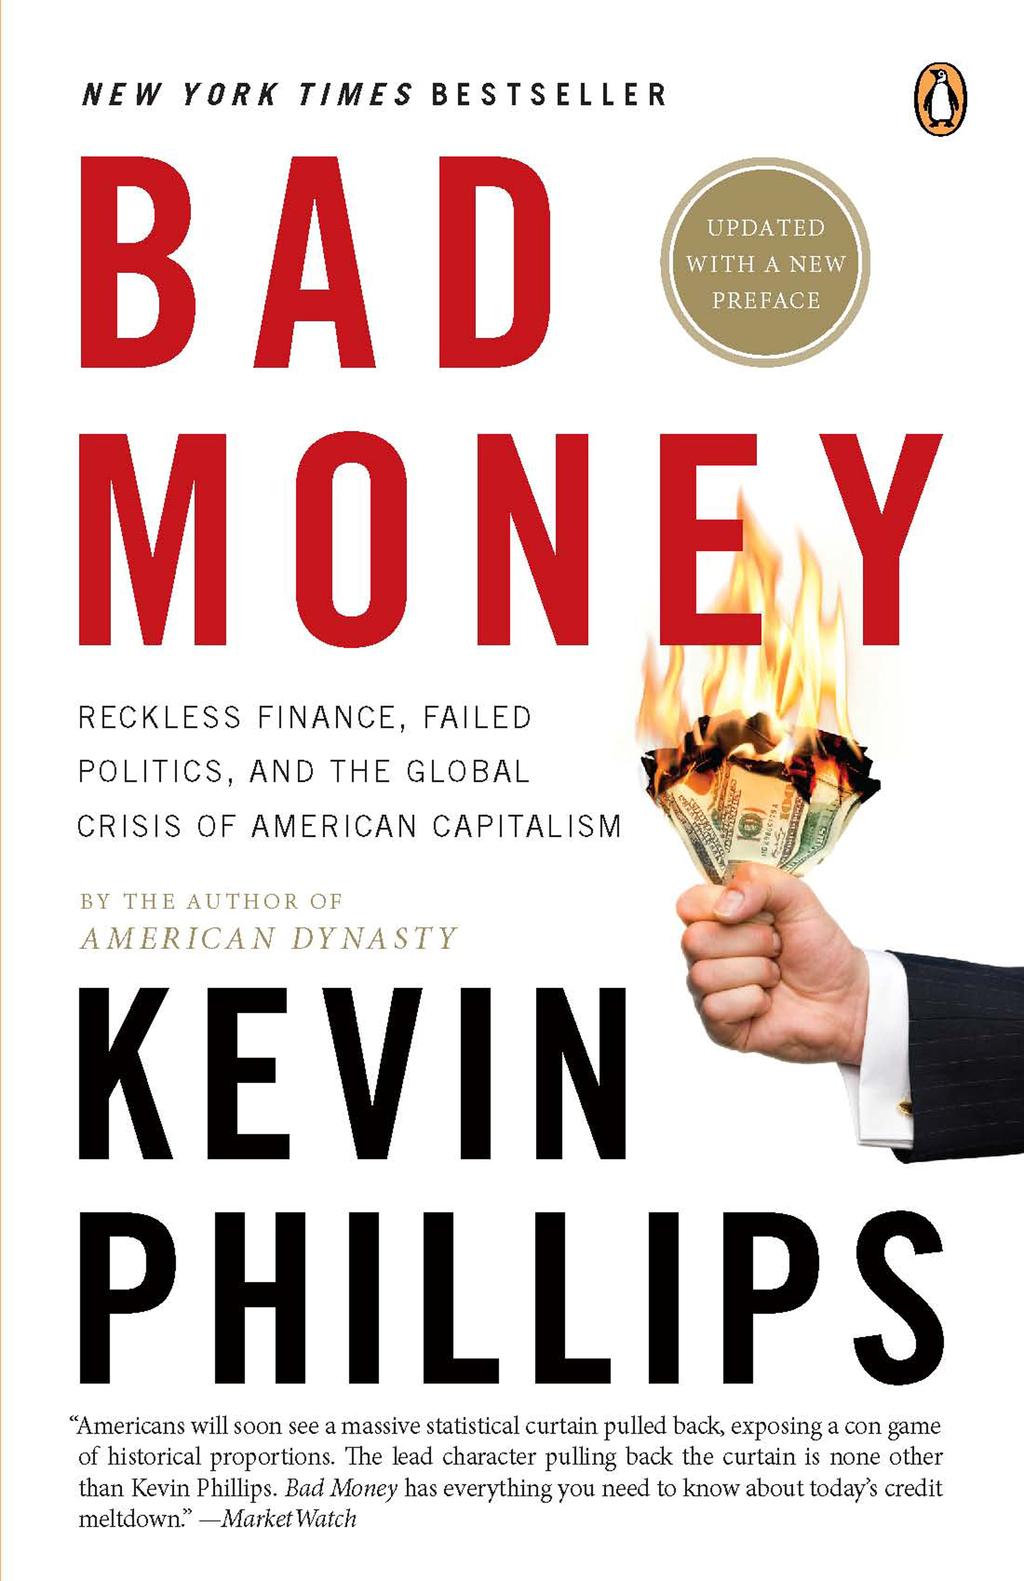 Bad Money Reckless Finance,  Failed Politics,  and the Global Crisis ofAmerican Capitalism